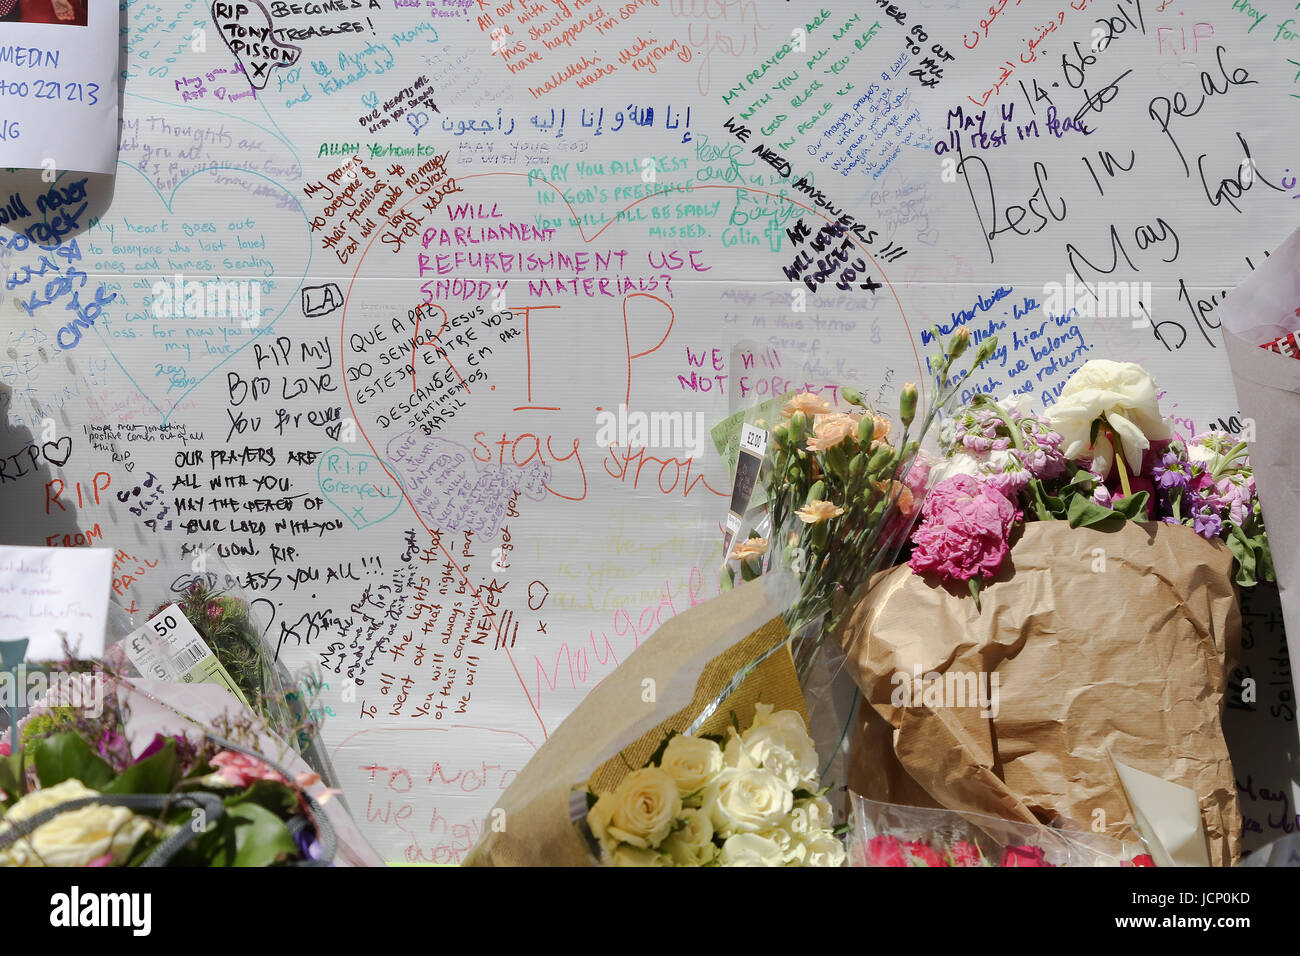 London, UK. 16th June, 2017. Messages of condolence and support are left at a relief centre close to the scene of - Stock Image